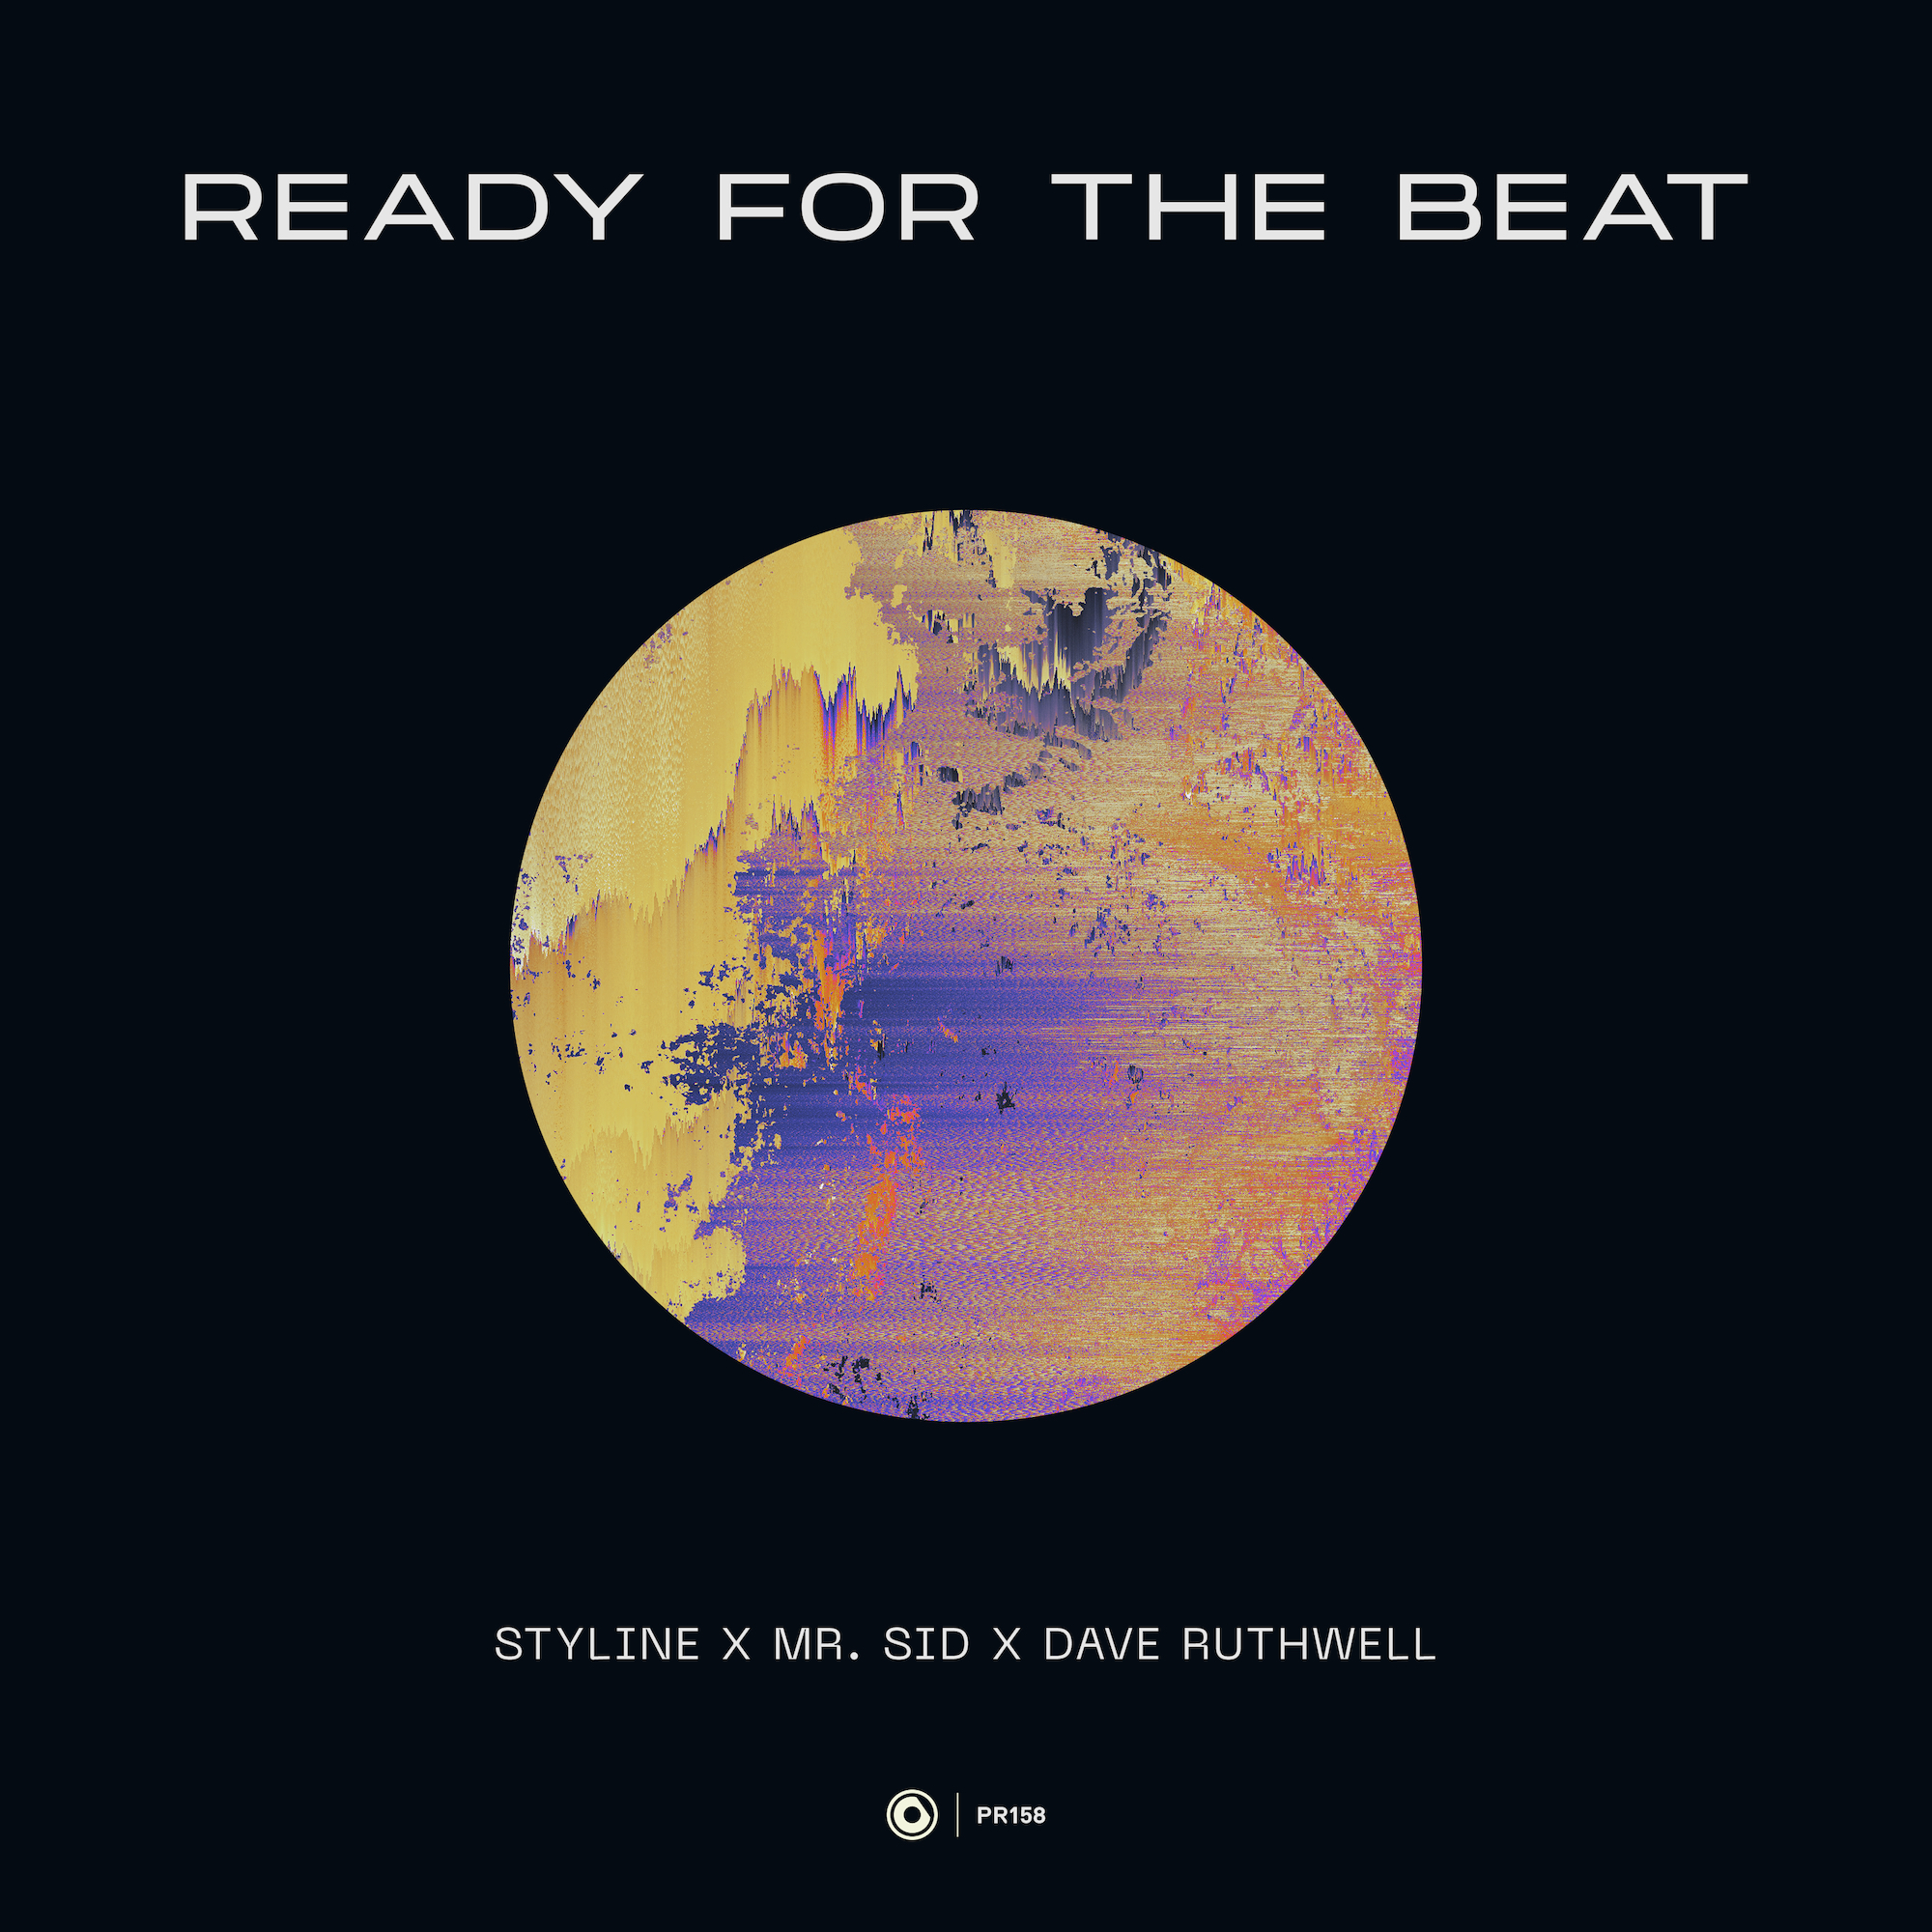 Styline X Mr. Sid X Dave Ruthwell - READY FOR THE BEAT